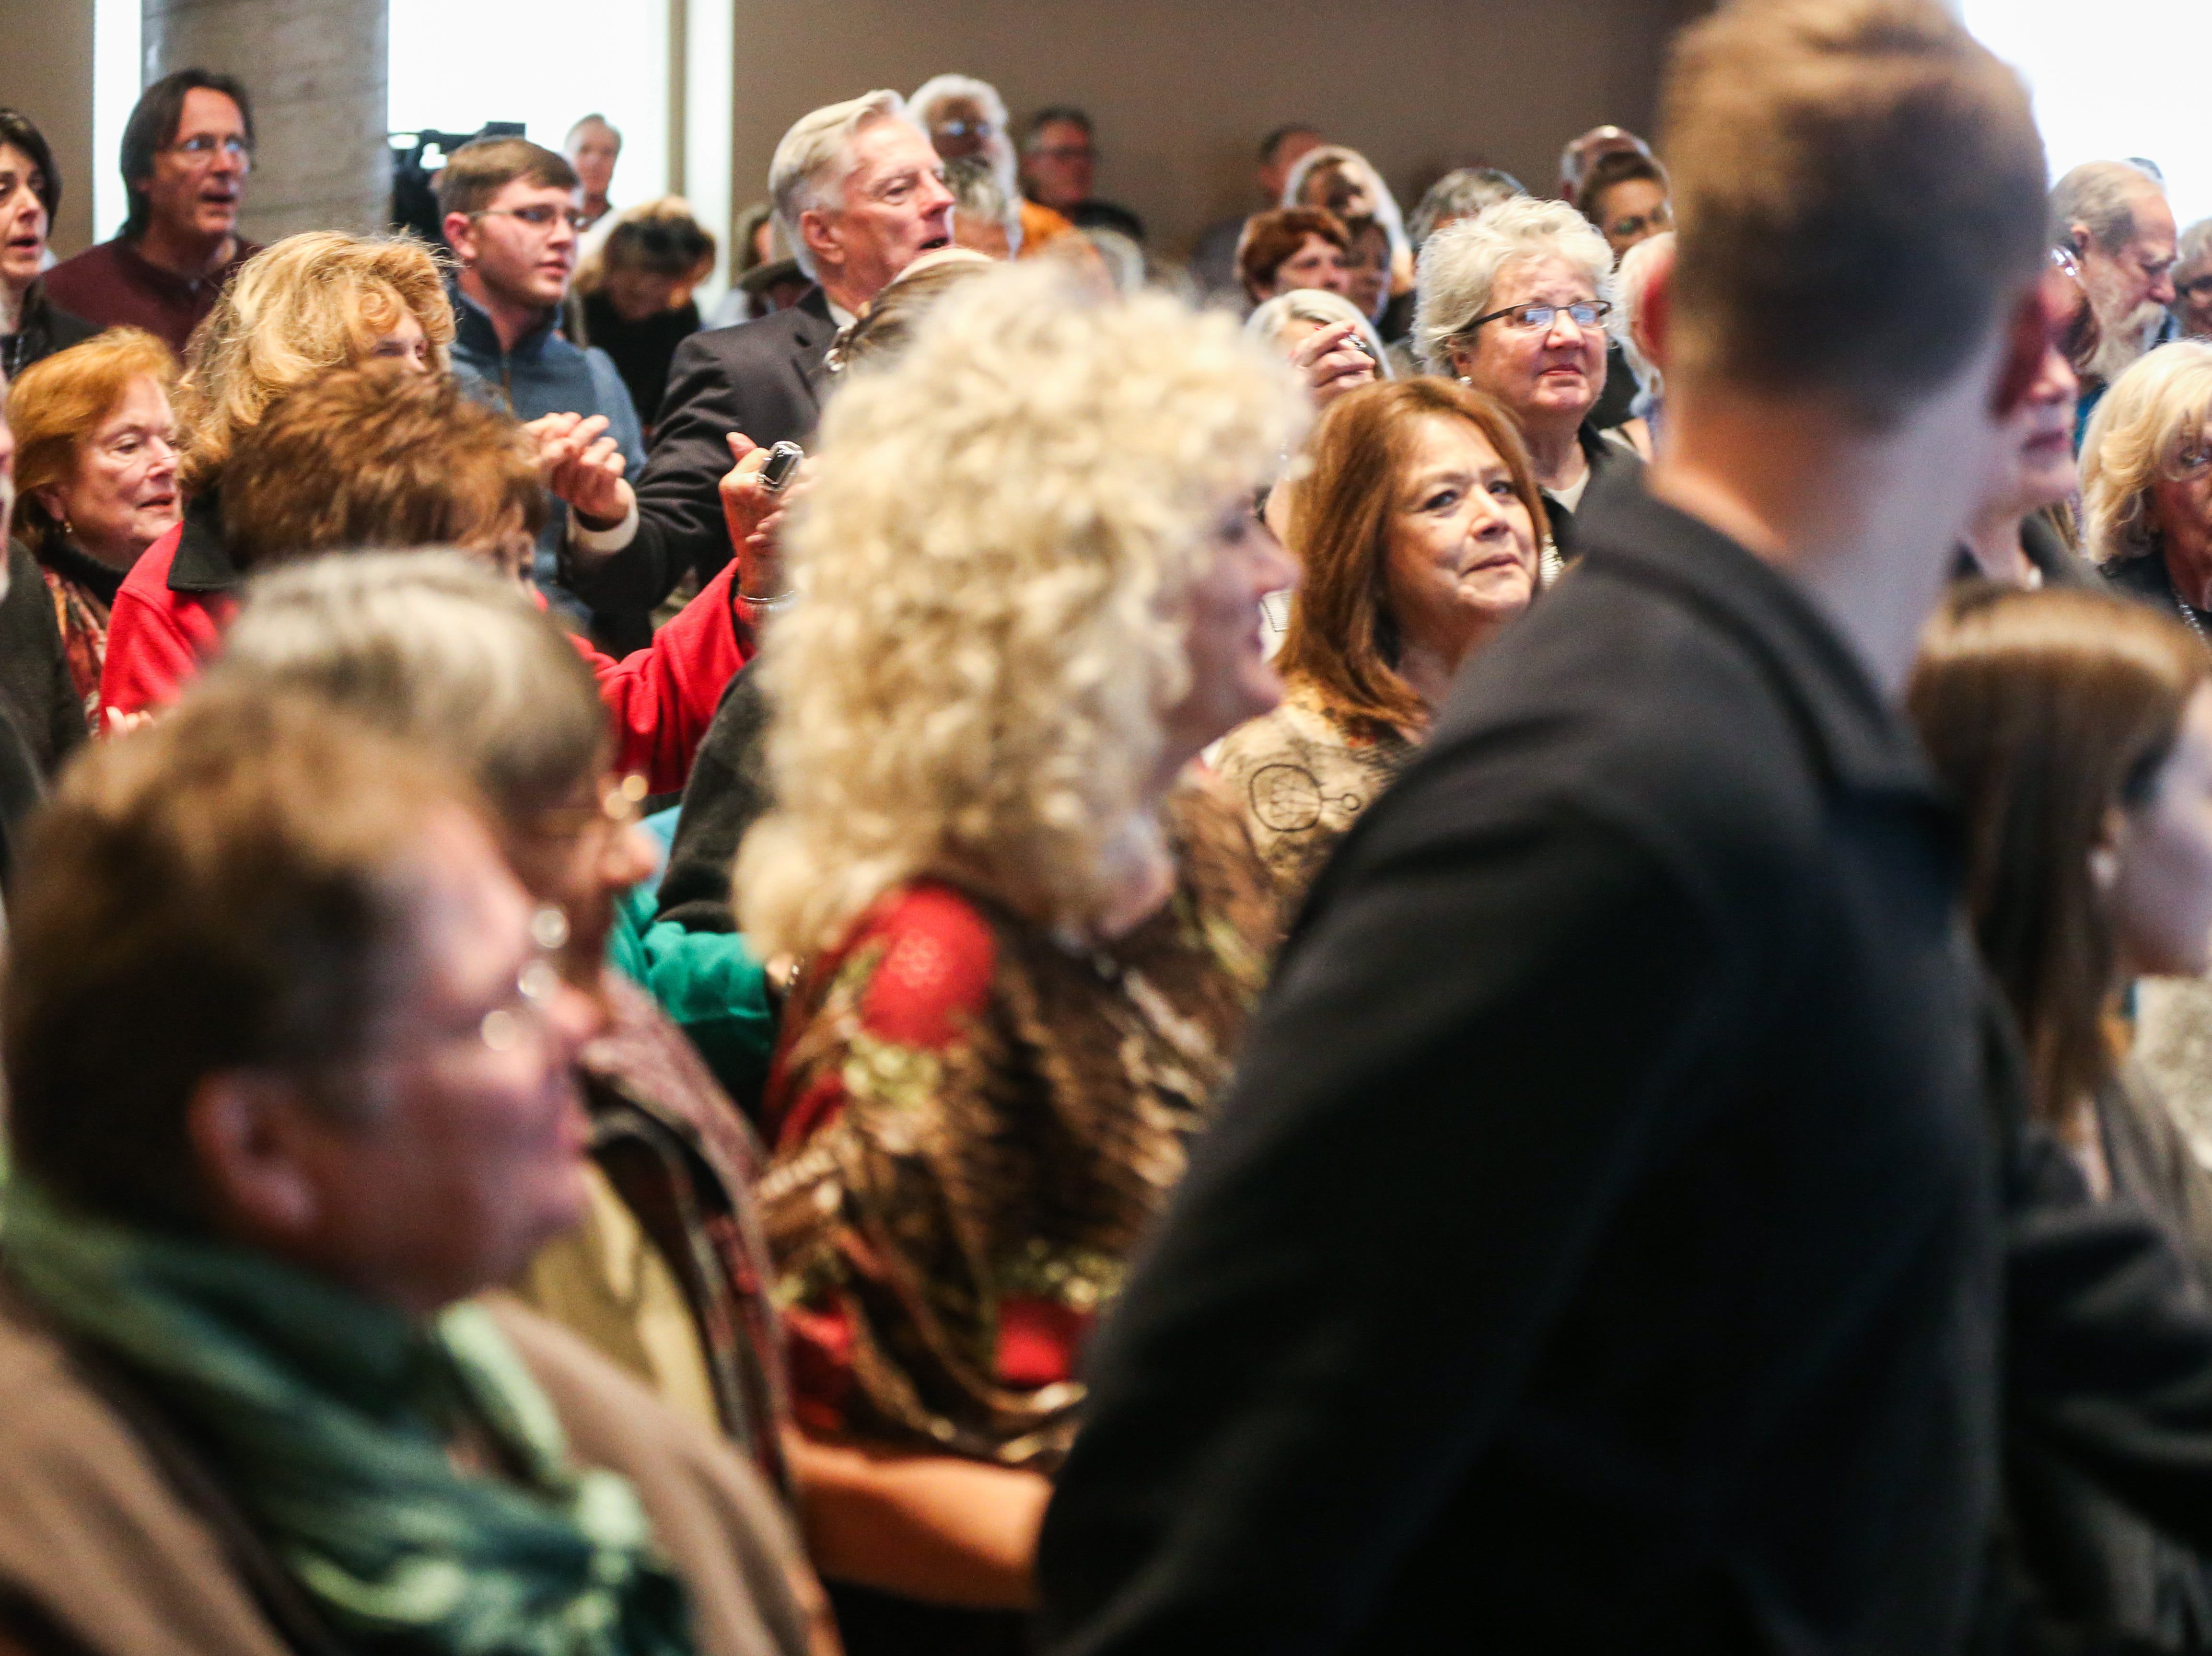 Everyone held hands during a song for the Celebration of Spirit for Roger Allen Sunday, Jan. 13, 2019, at San Angelo Museum of Fine Arts.